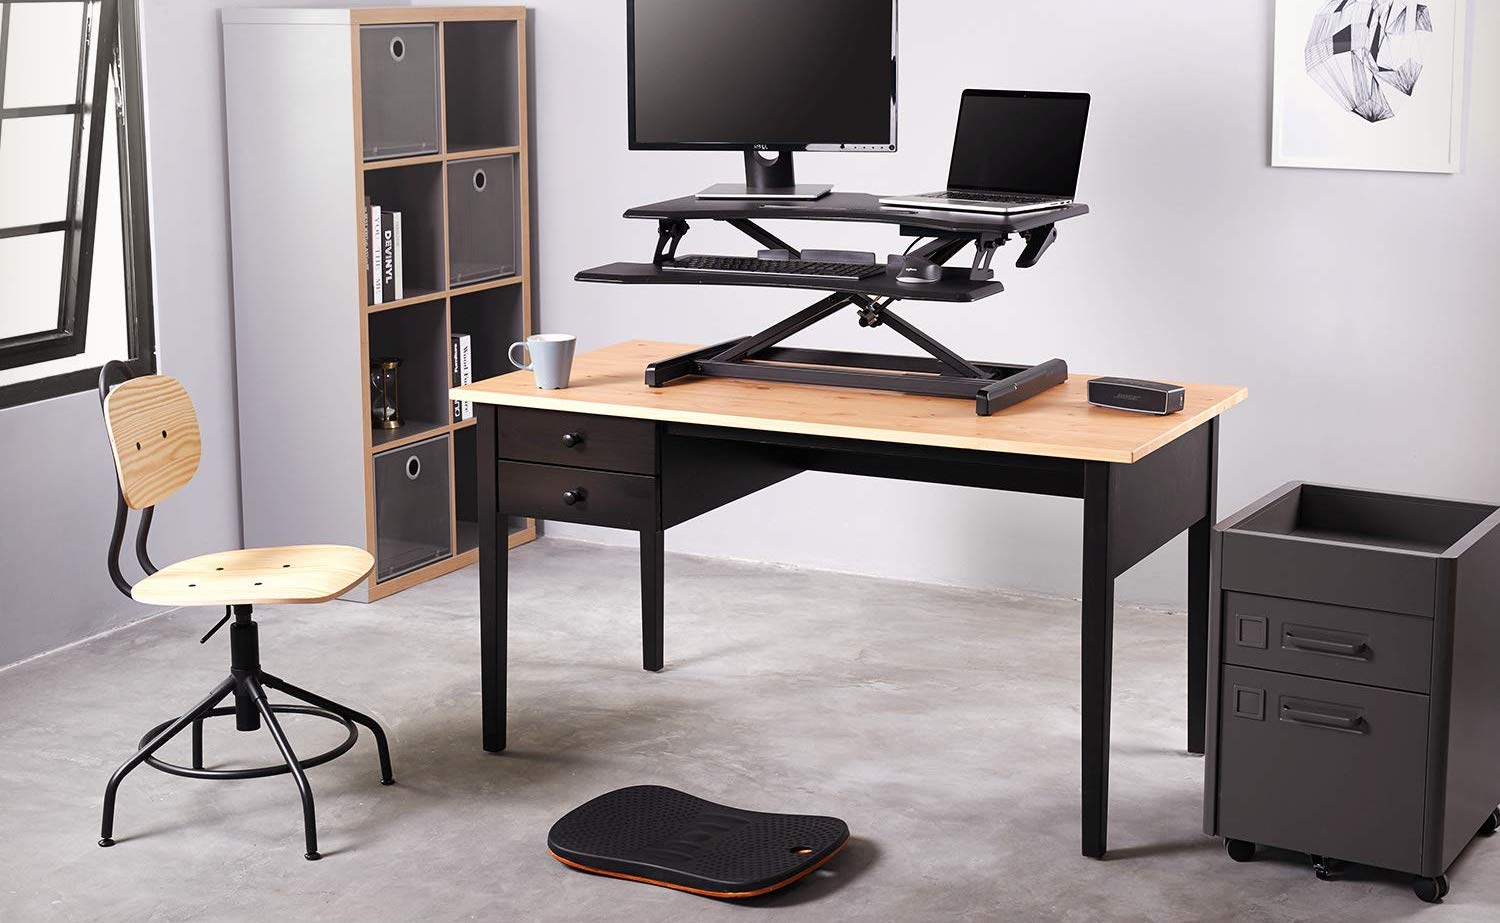 FEZIBO Ergonomic Standing Desk Converter allows you to find the most comfortable working position